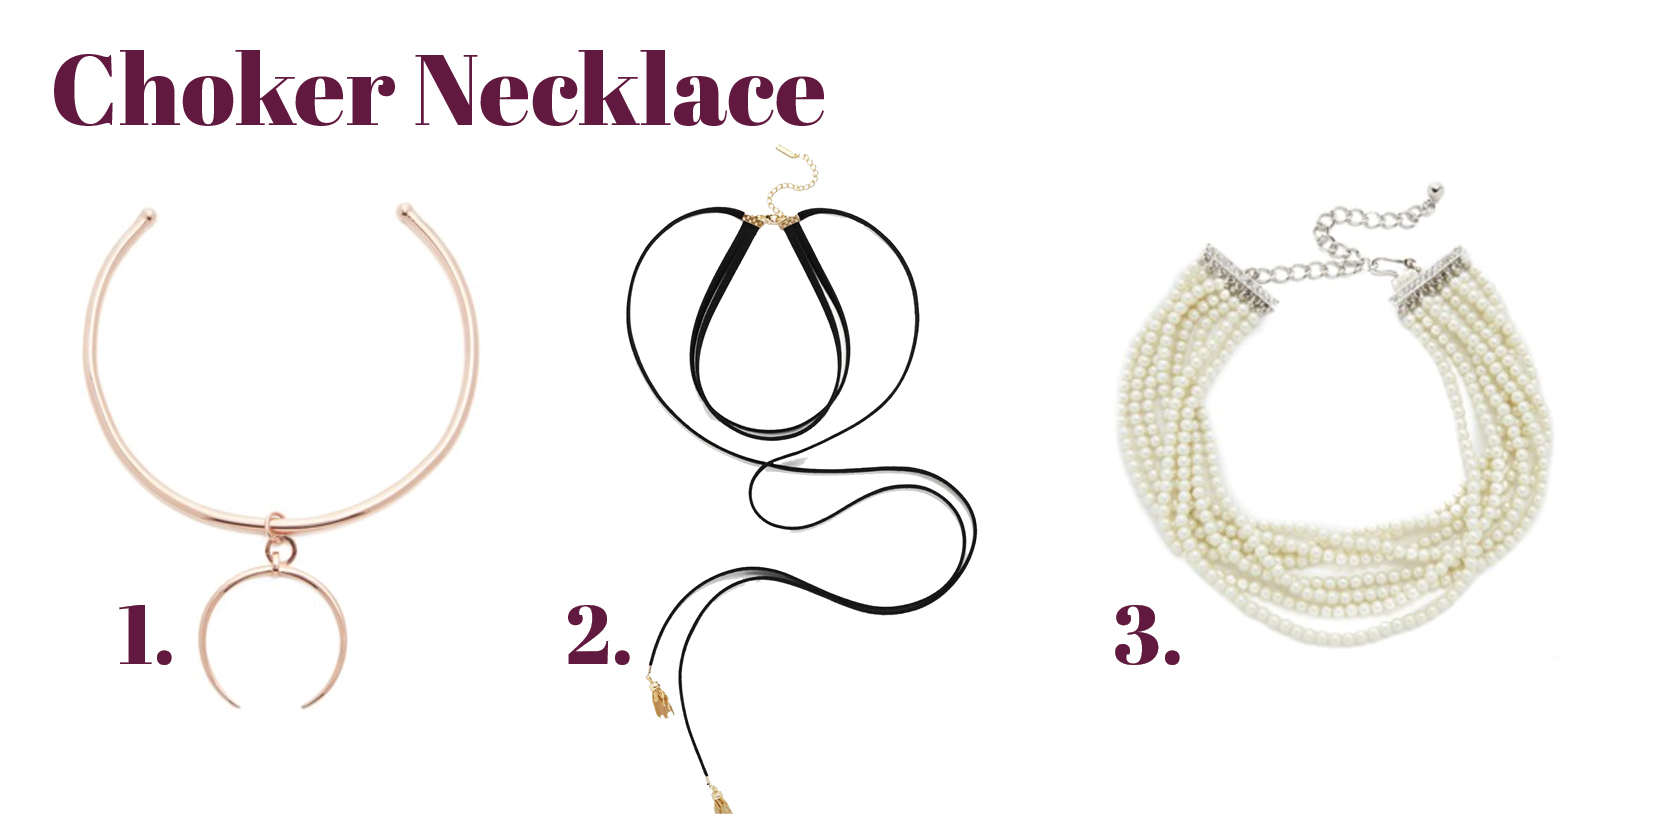 choker-necklace-10.jpg